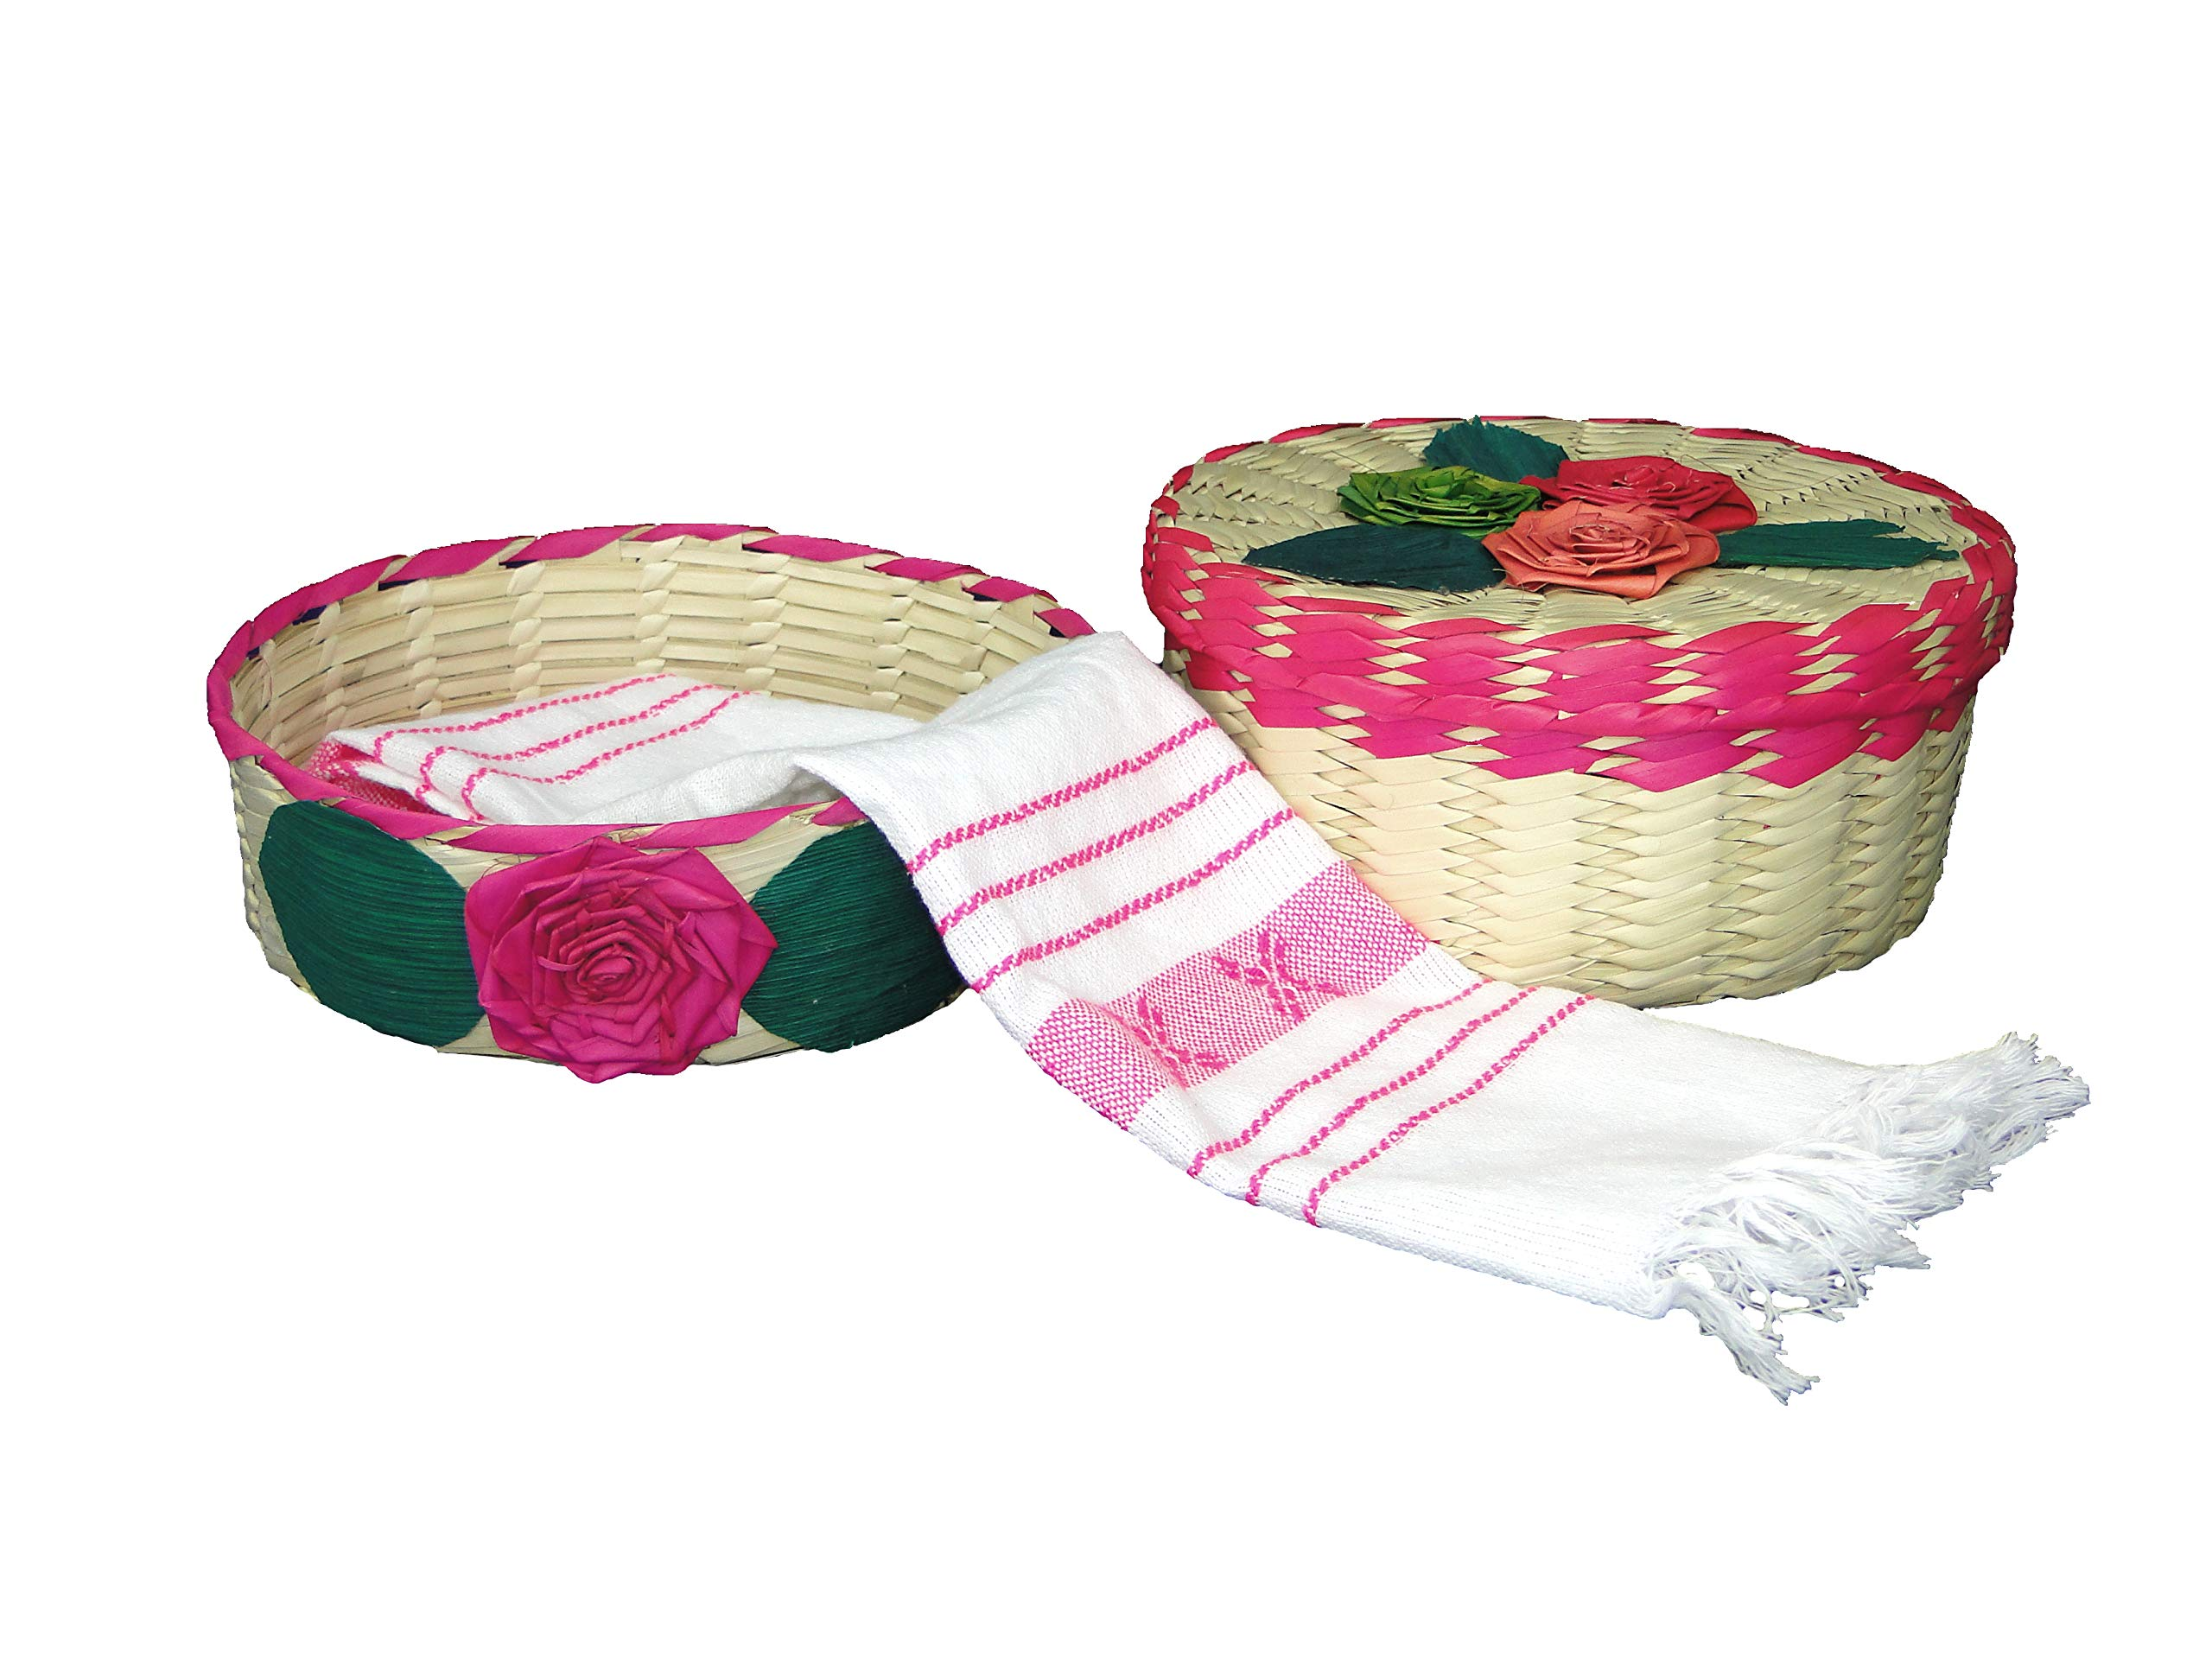 2 pack Mexican handmade palm baskets (one with lid) and 1 woven napkin cloth (servilleta mexicana) 100% cotton Eco Friendly tortilla warmer (tortillero) for party, fiesta decoration